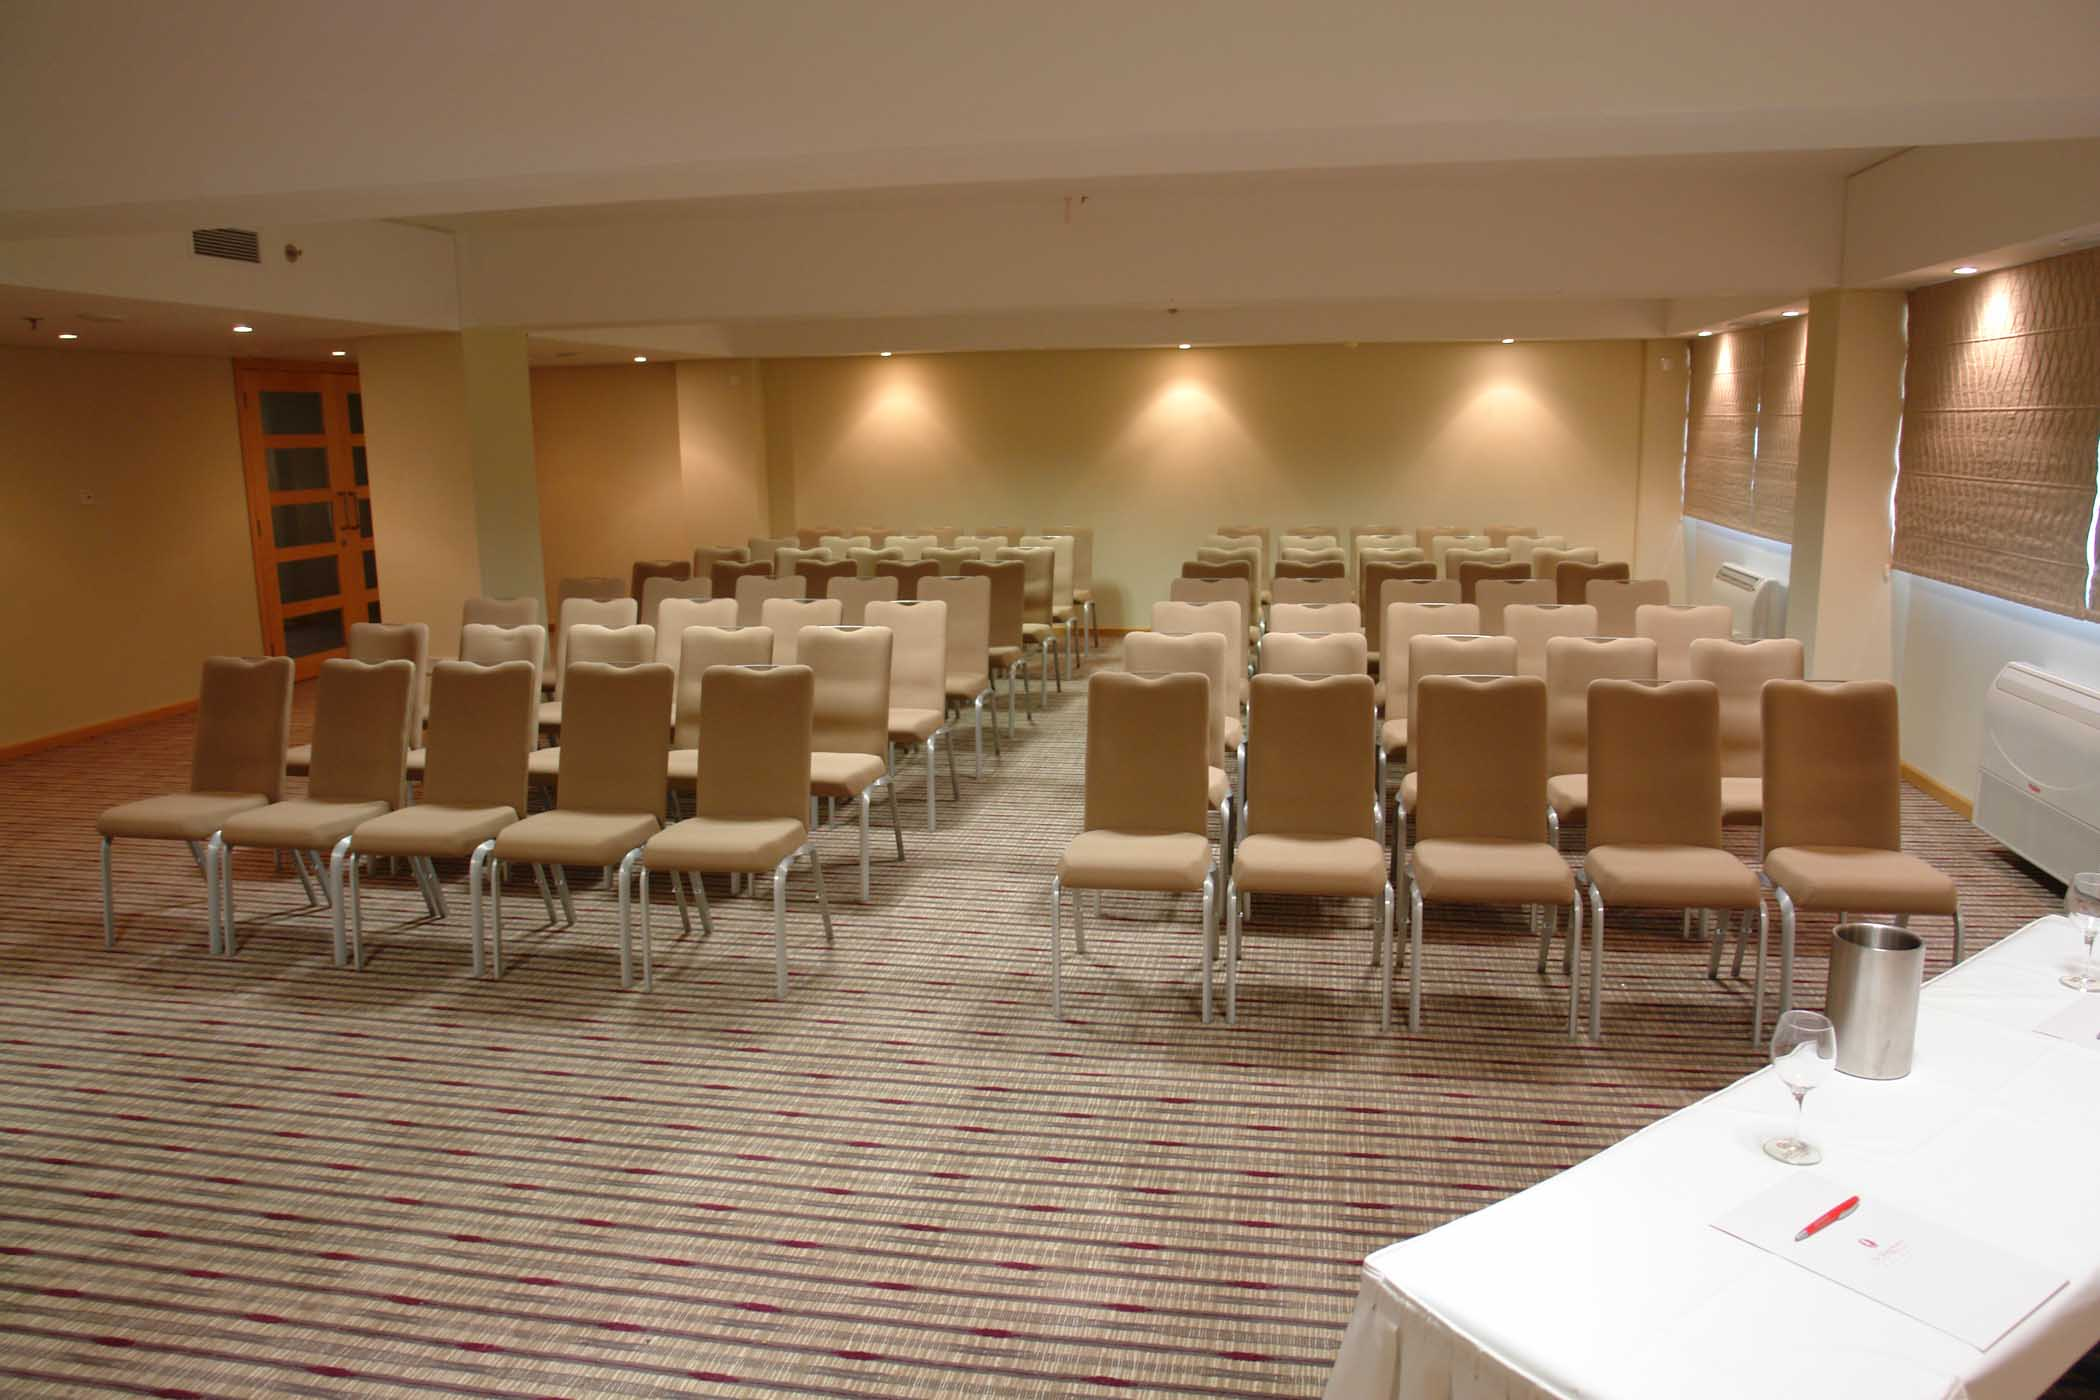 STR Atrium Conferences 300dpi 2